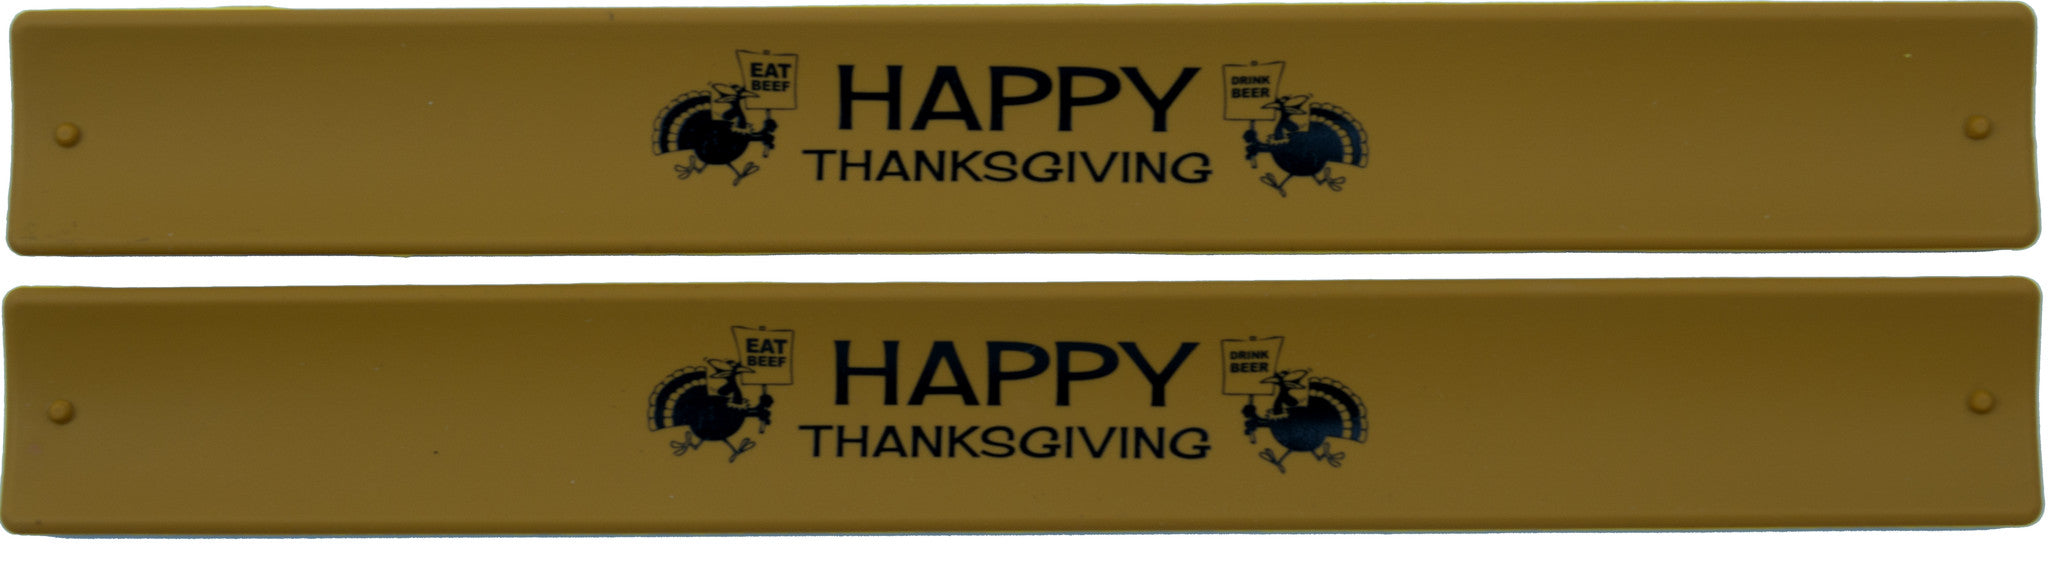 Thanksgiving Slap Bands  - Eat Beef Drink Beer